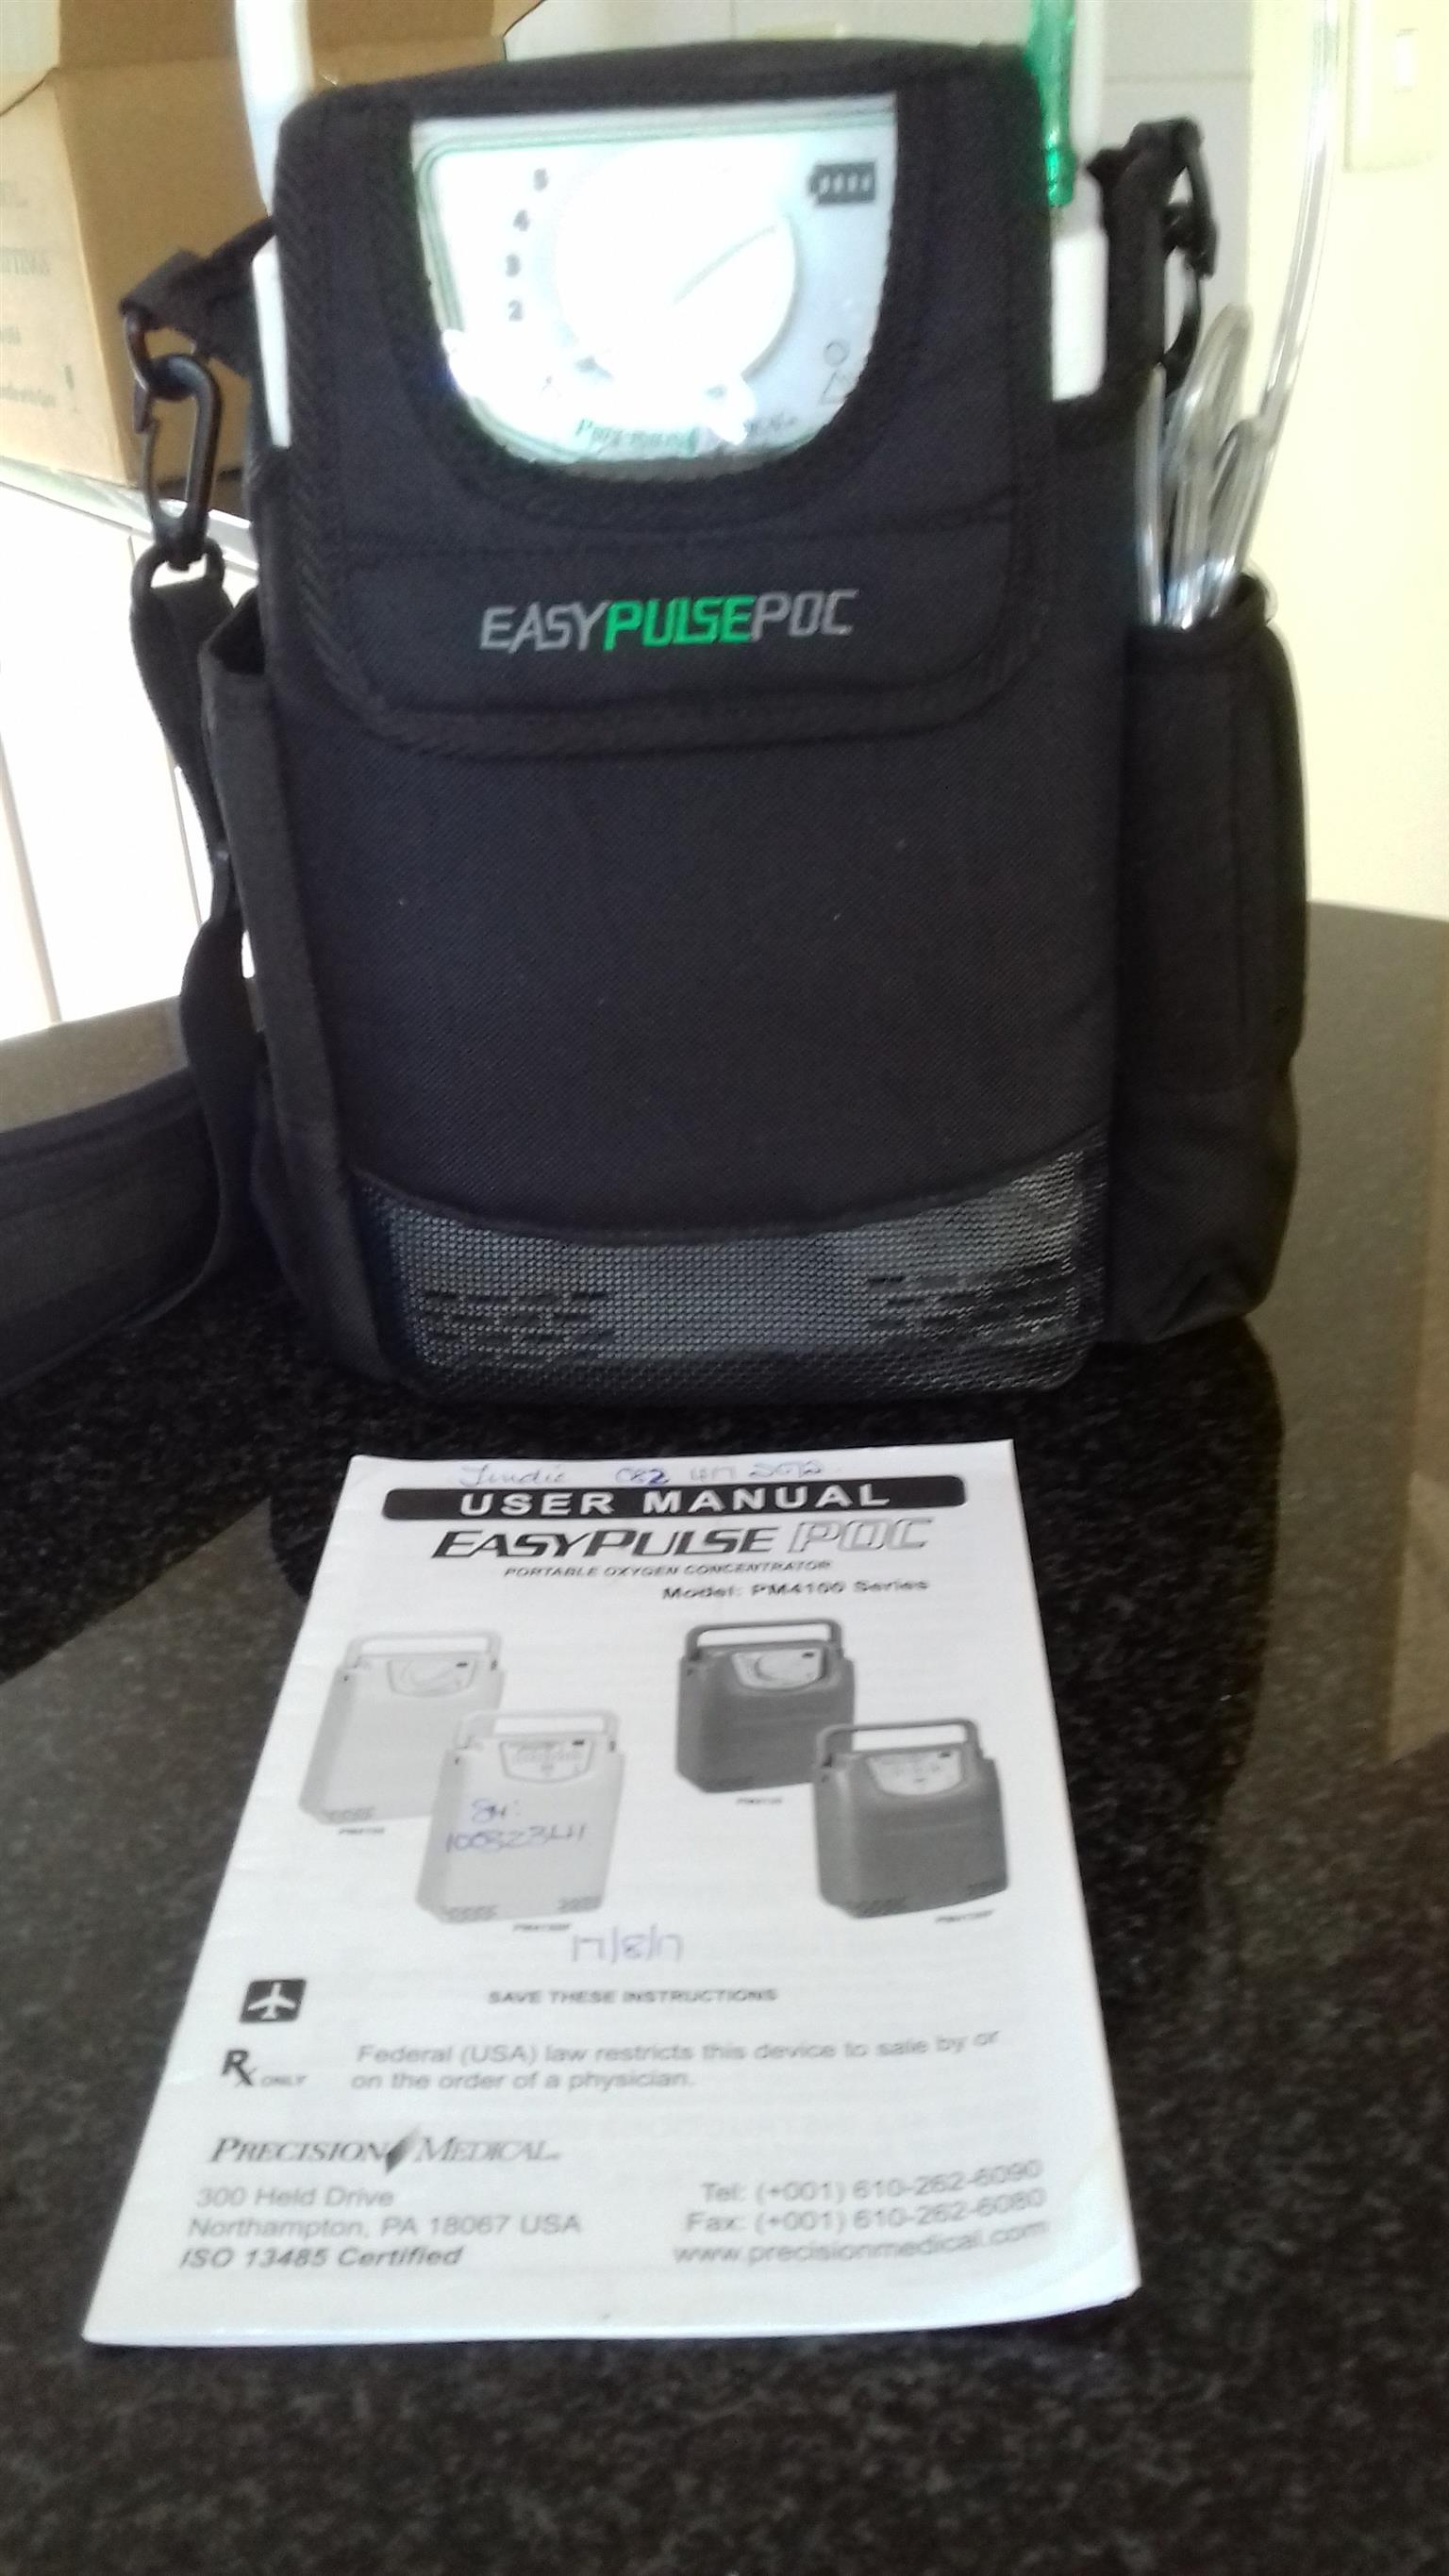 Easy Pulse Portable Oxygen Concentrator Model: PM4100 Series